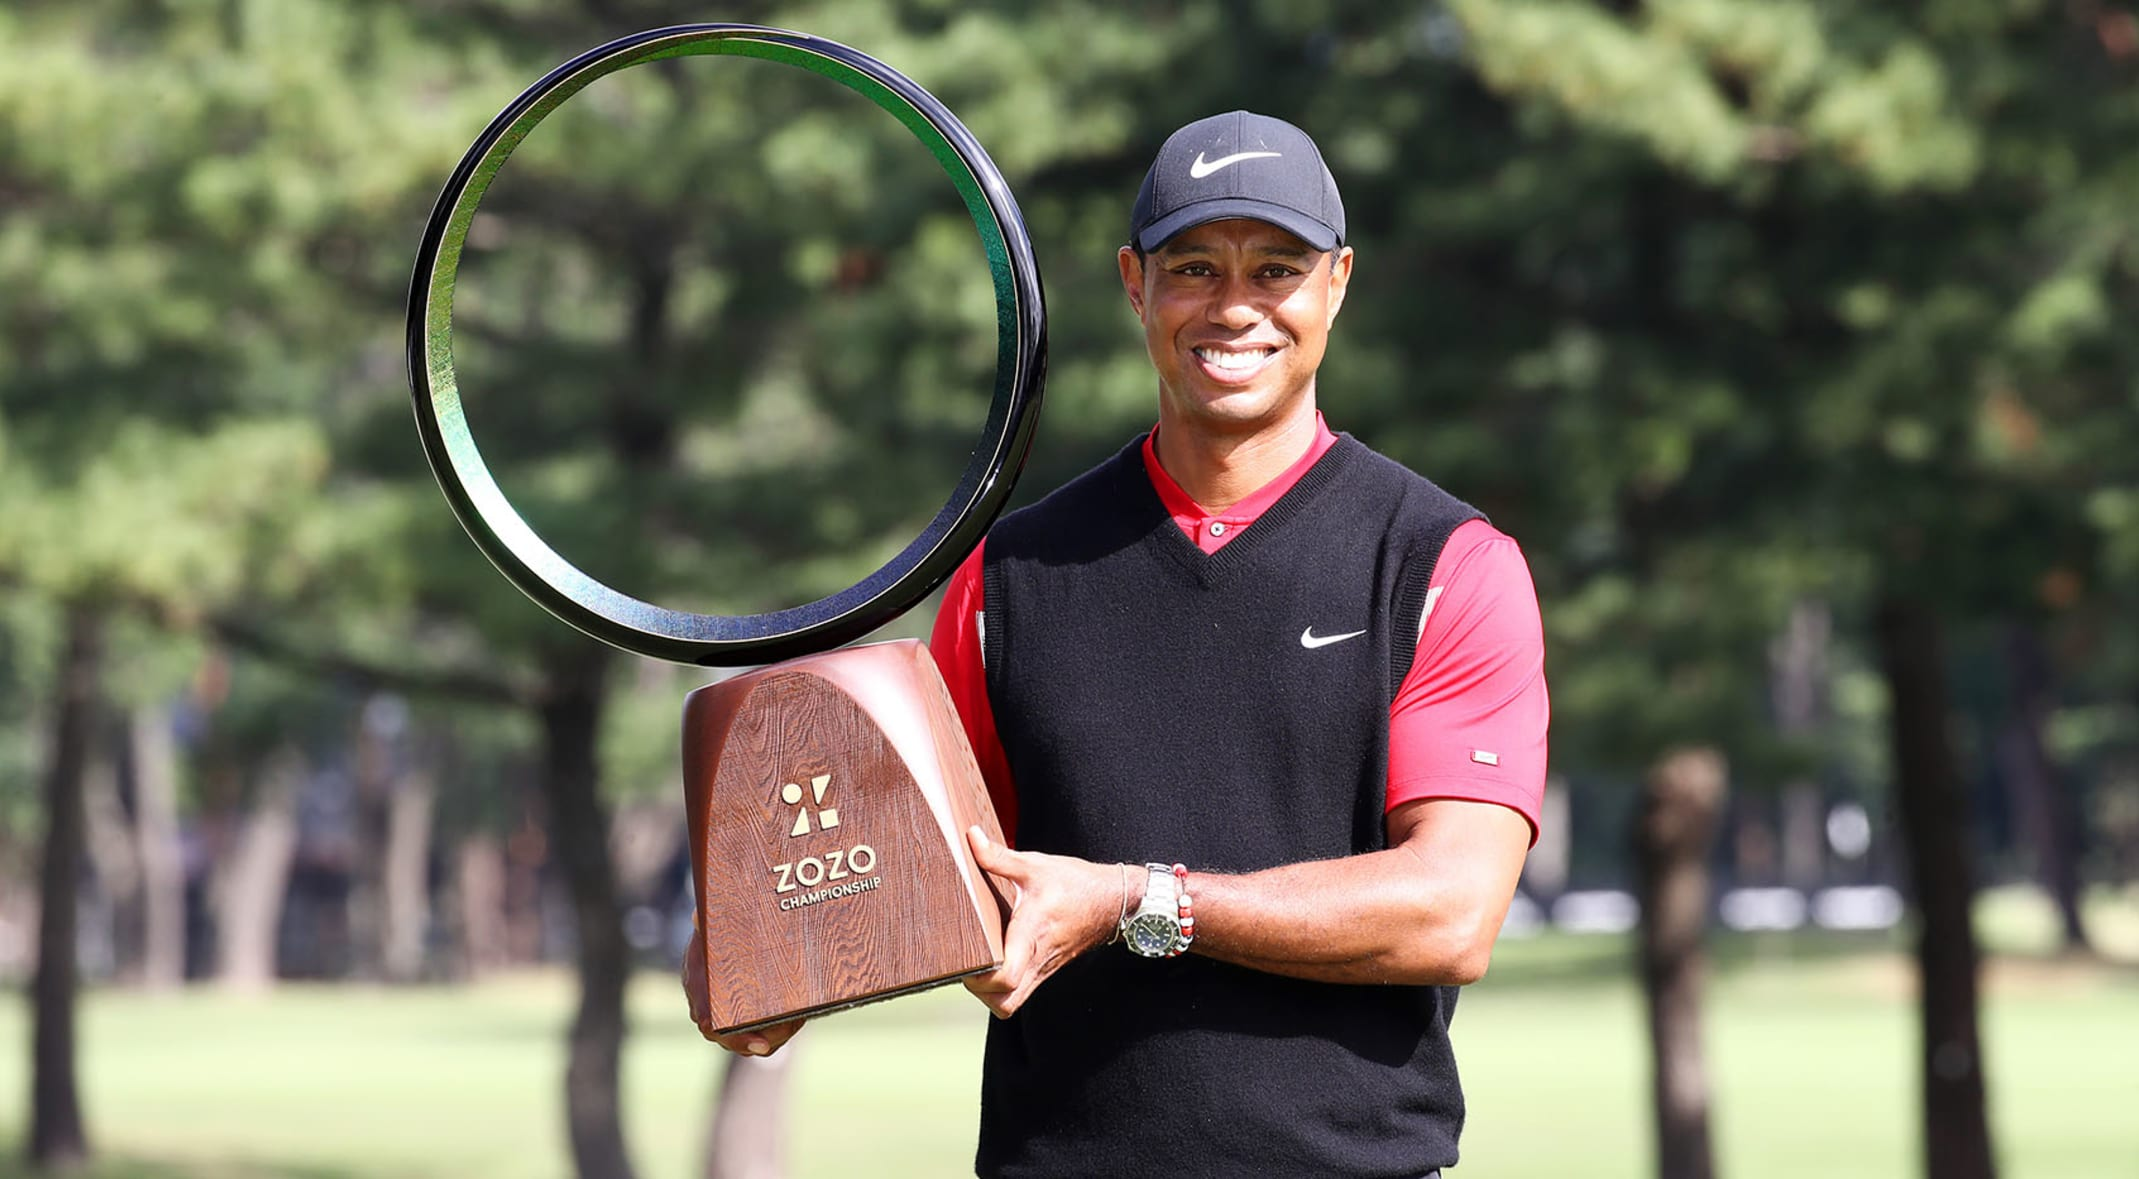 Defending champion Tiger Woods